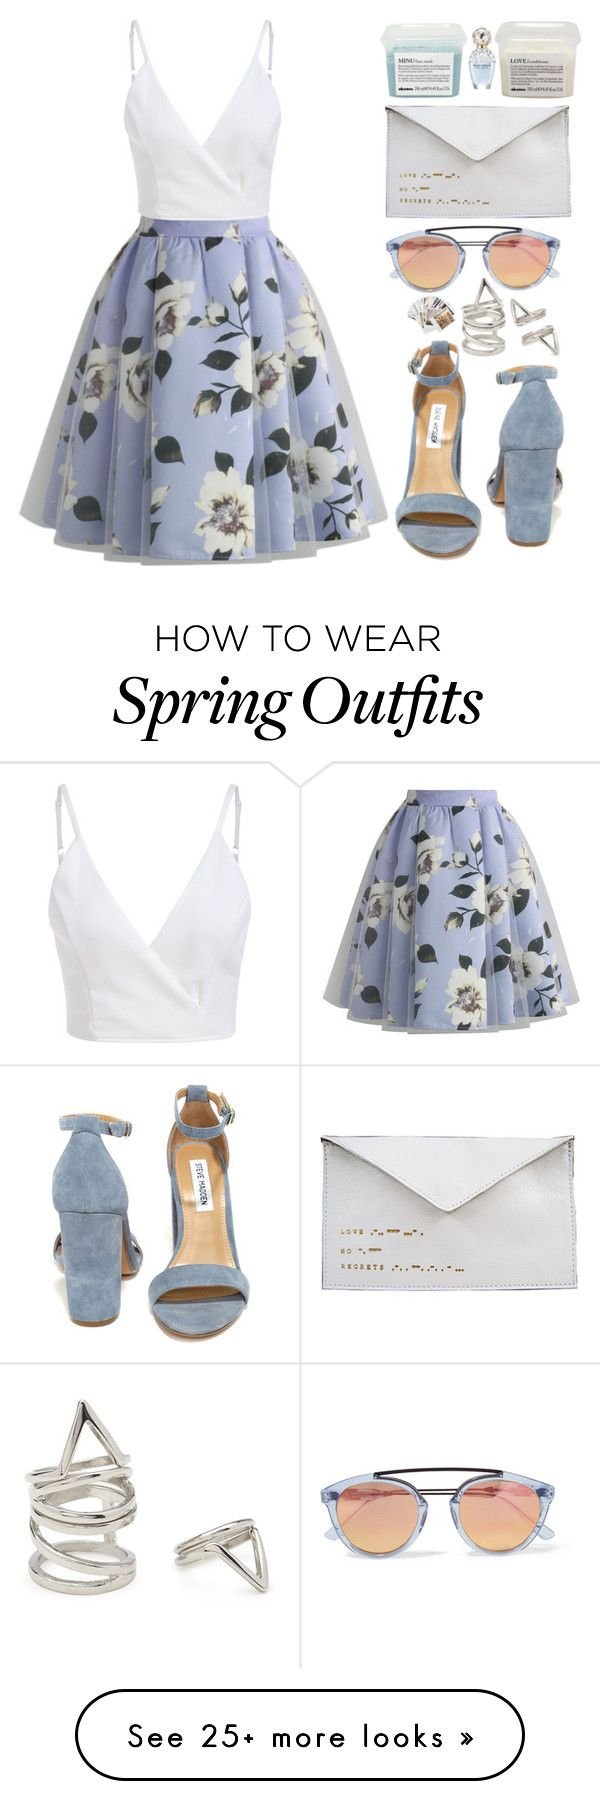 """In Progress"" by finding-0riginality on Polyvore featuring Westward Leaning, Chicwish, Davines, Steve Madden, Marc Jacobs, Antoinette Lee Designs, Forever 21 and Chronicle Books"